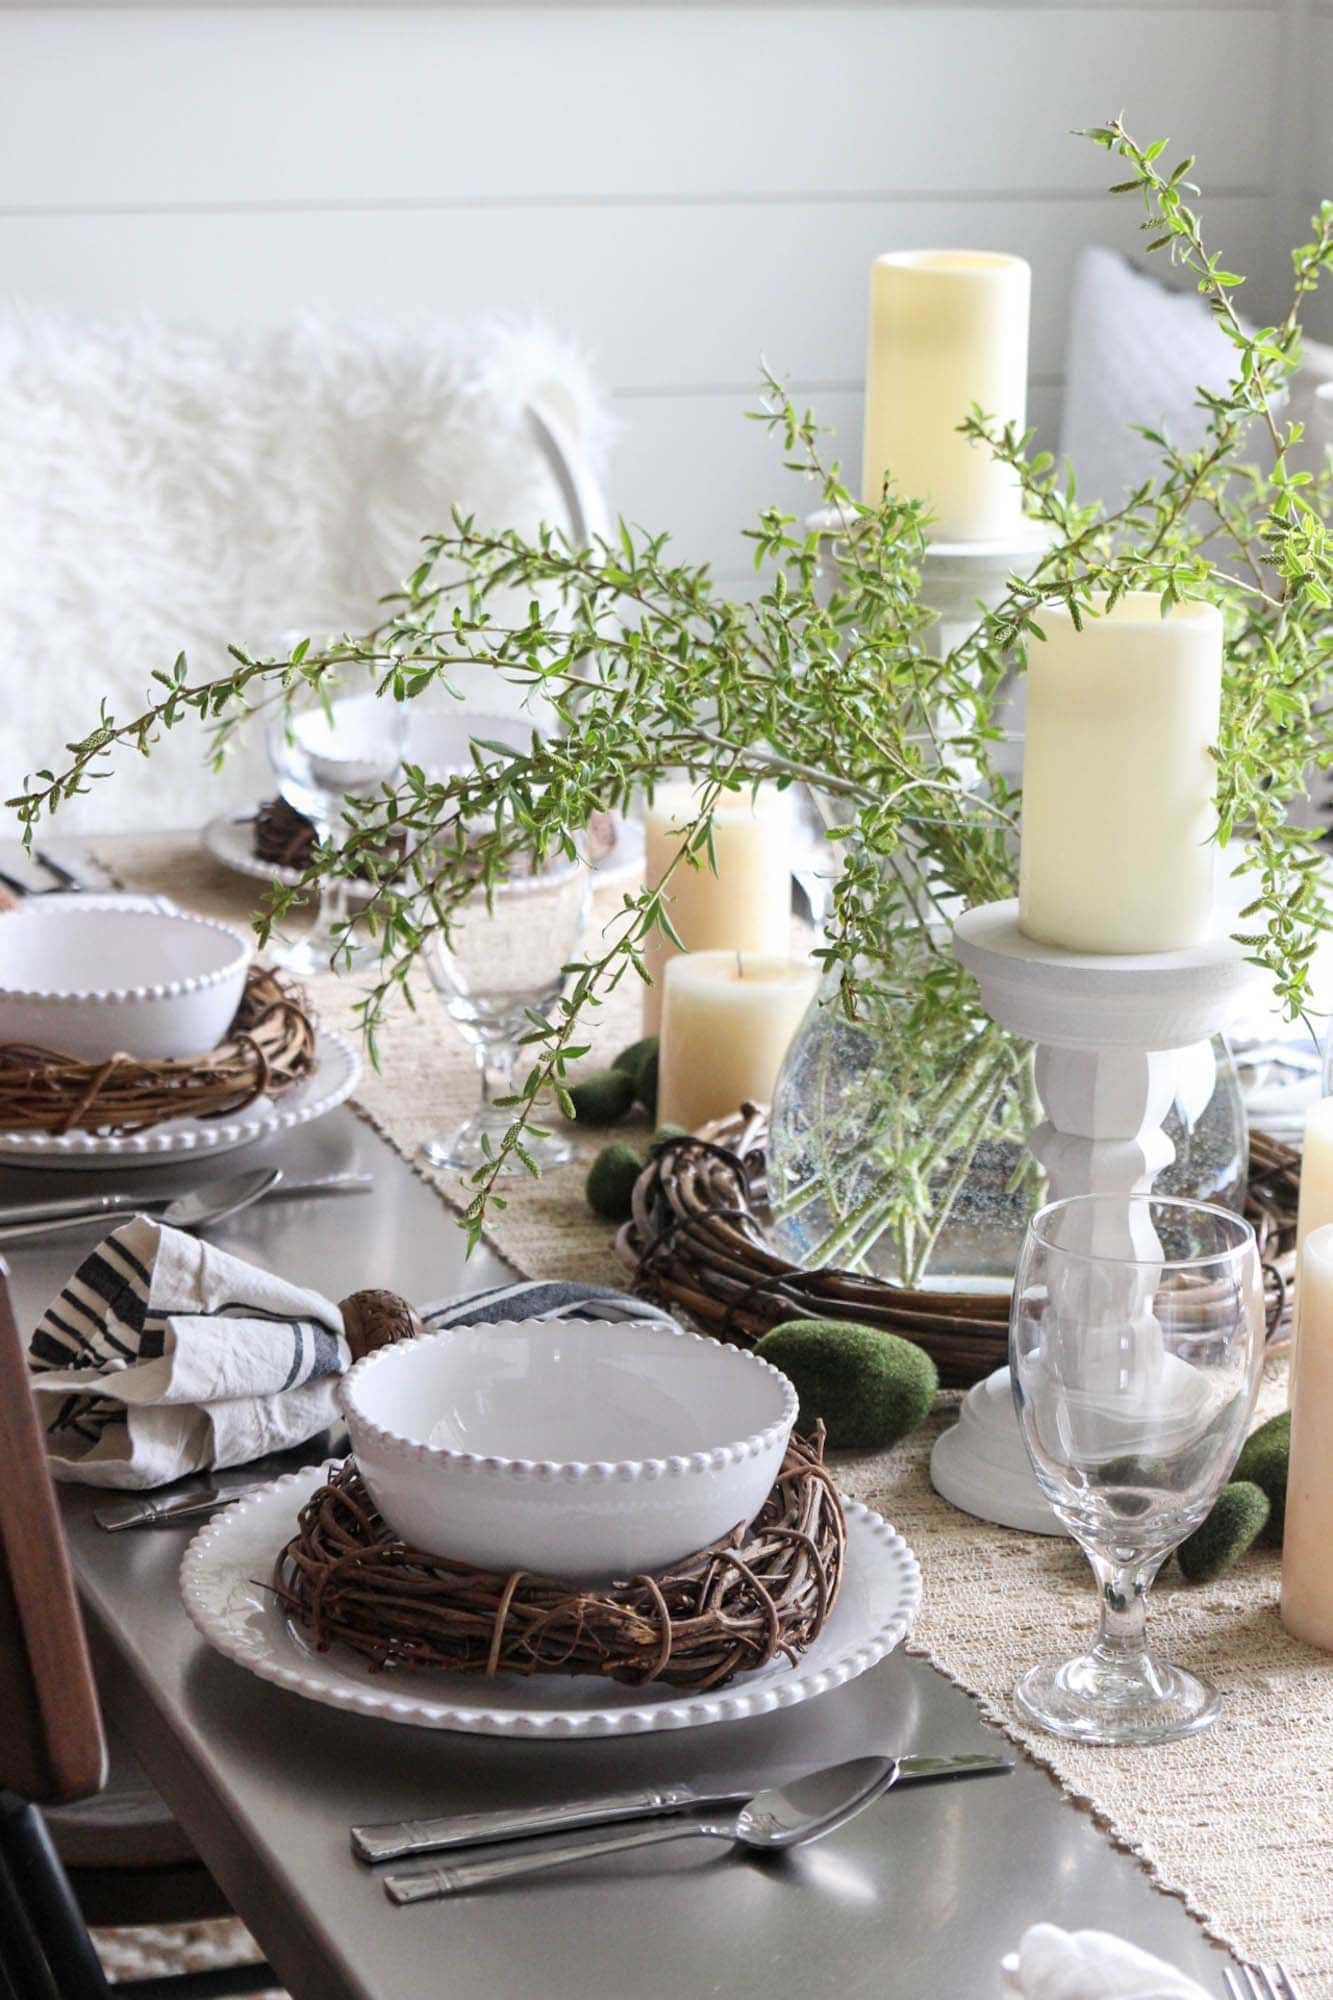 Setting The Table For Easter by The Wood Grain Cottage-5548